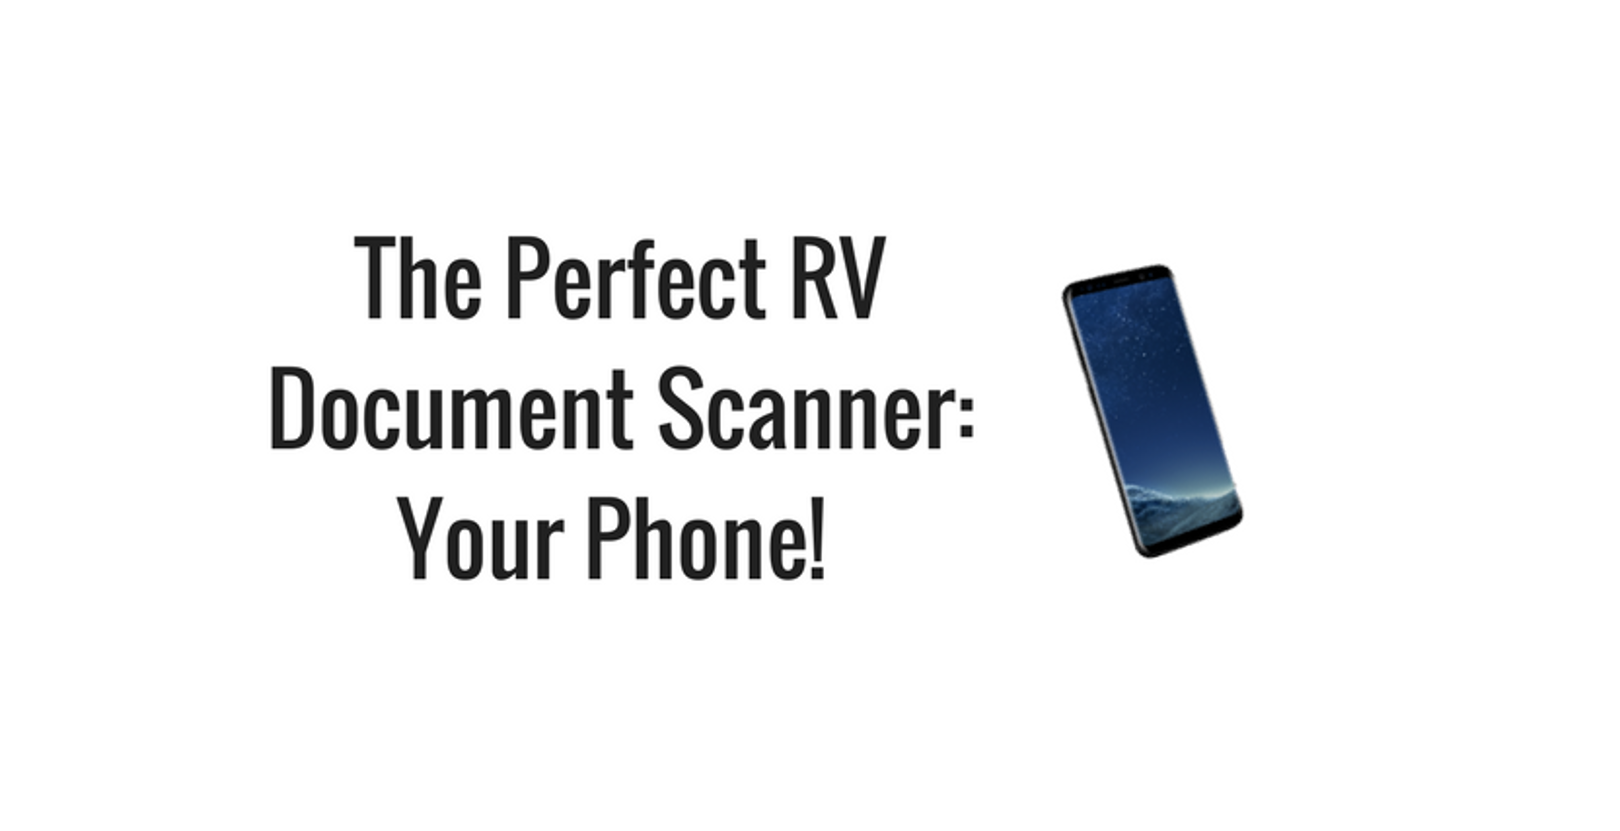 The Perfect Document Scanner for an RV: Your Phone!